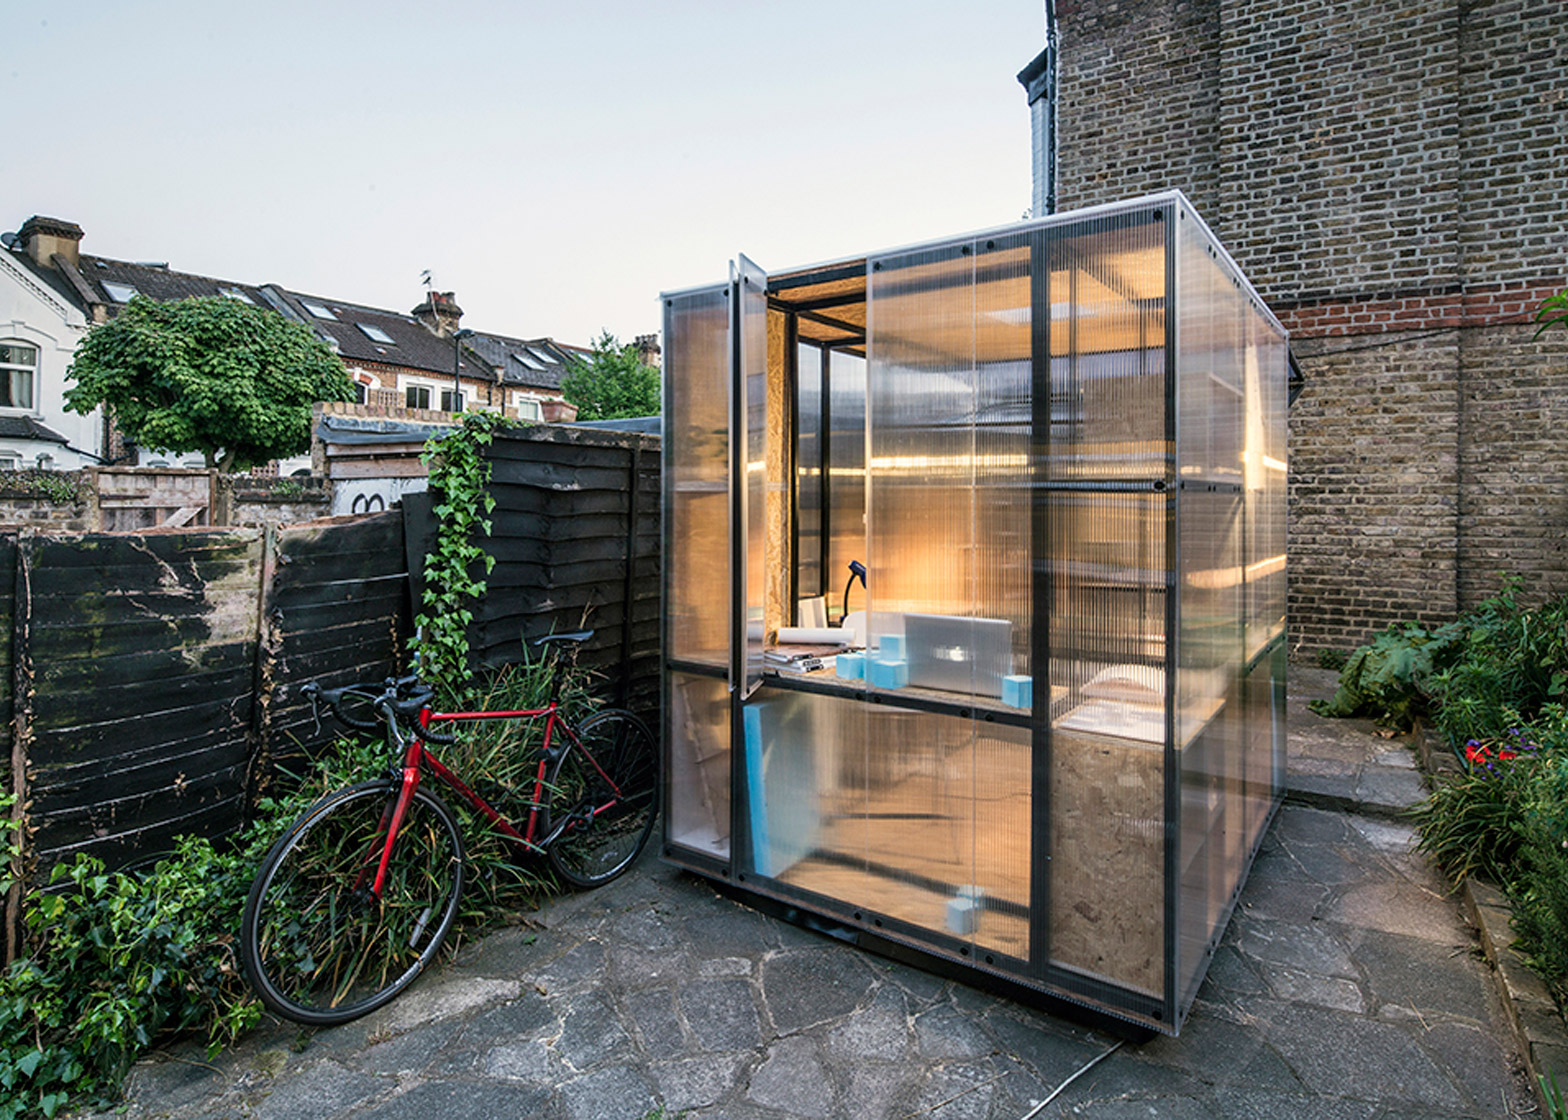 Architects Tomaso Boano and Jonas Prišmontas design a miniture pop up stidio to raise awareness of London's housing issues